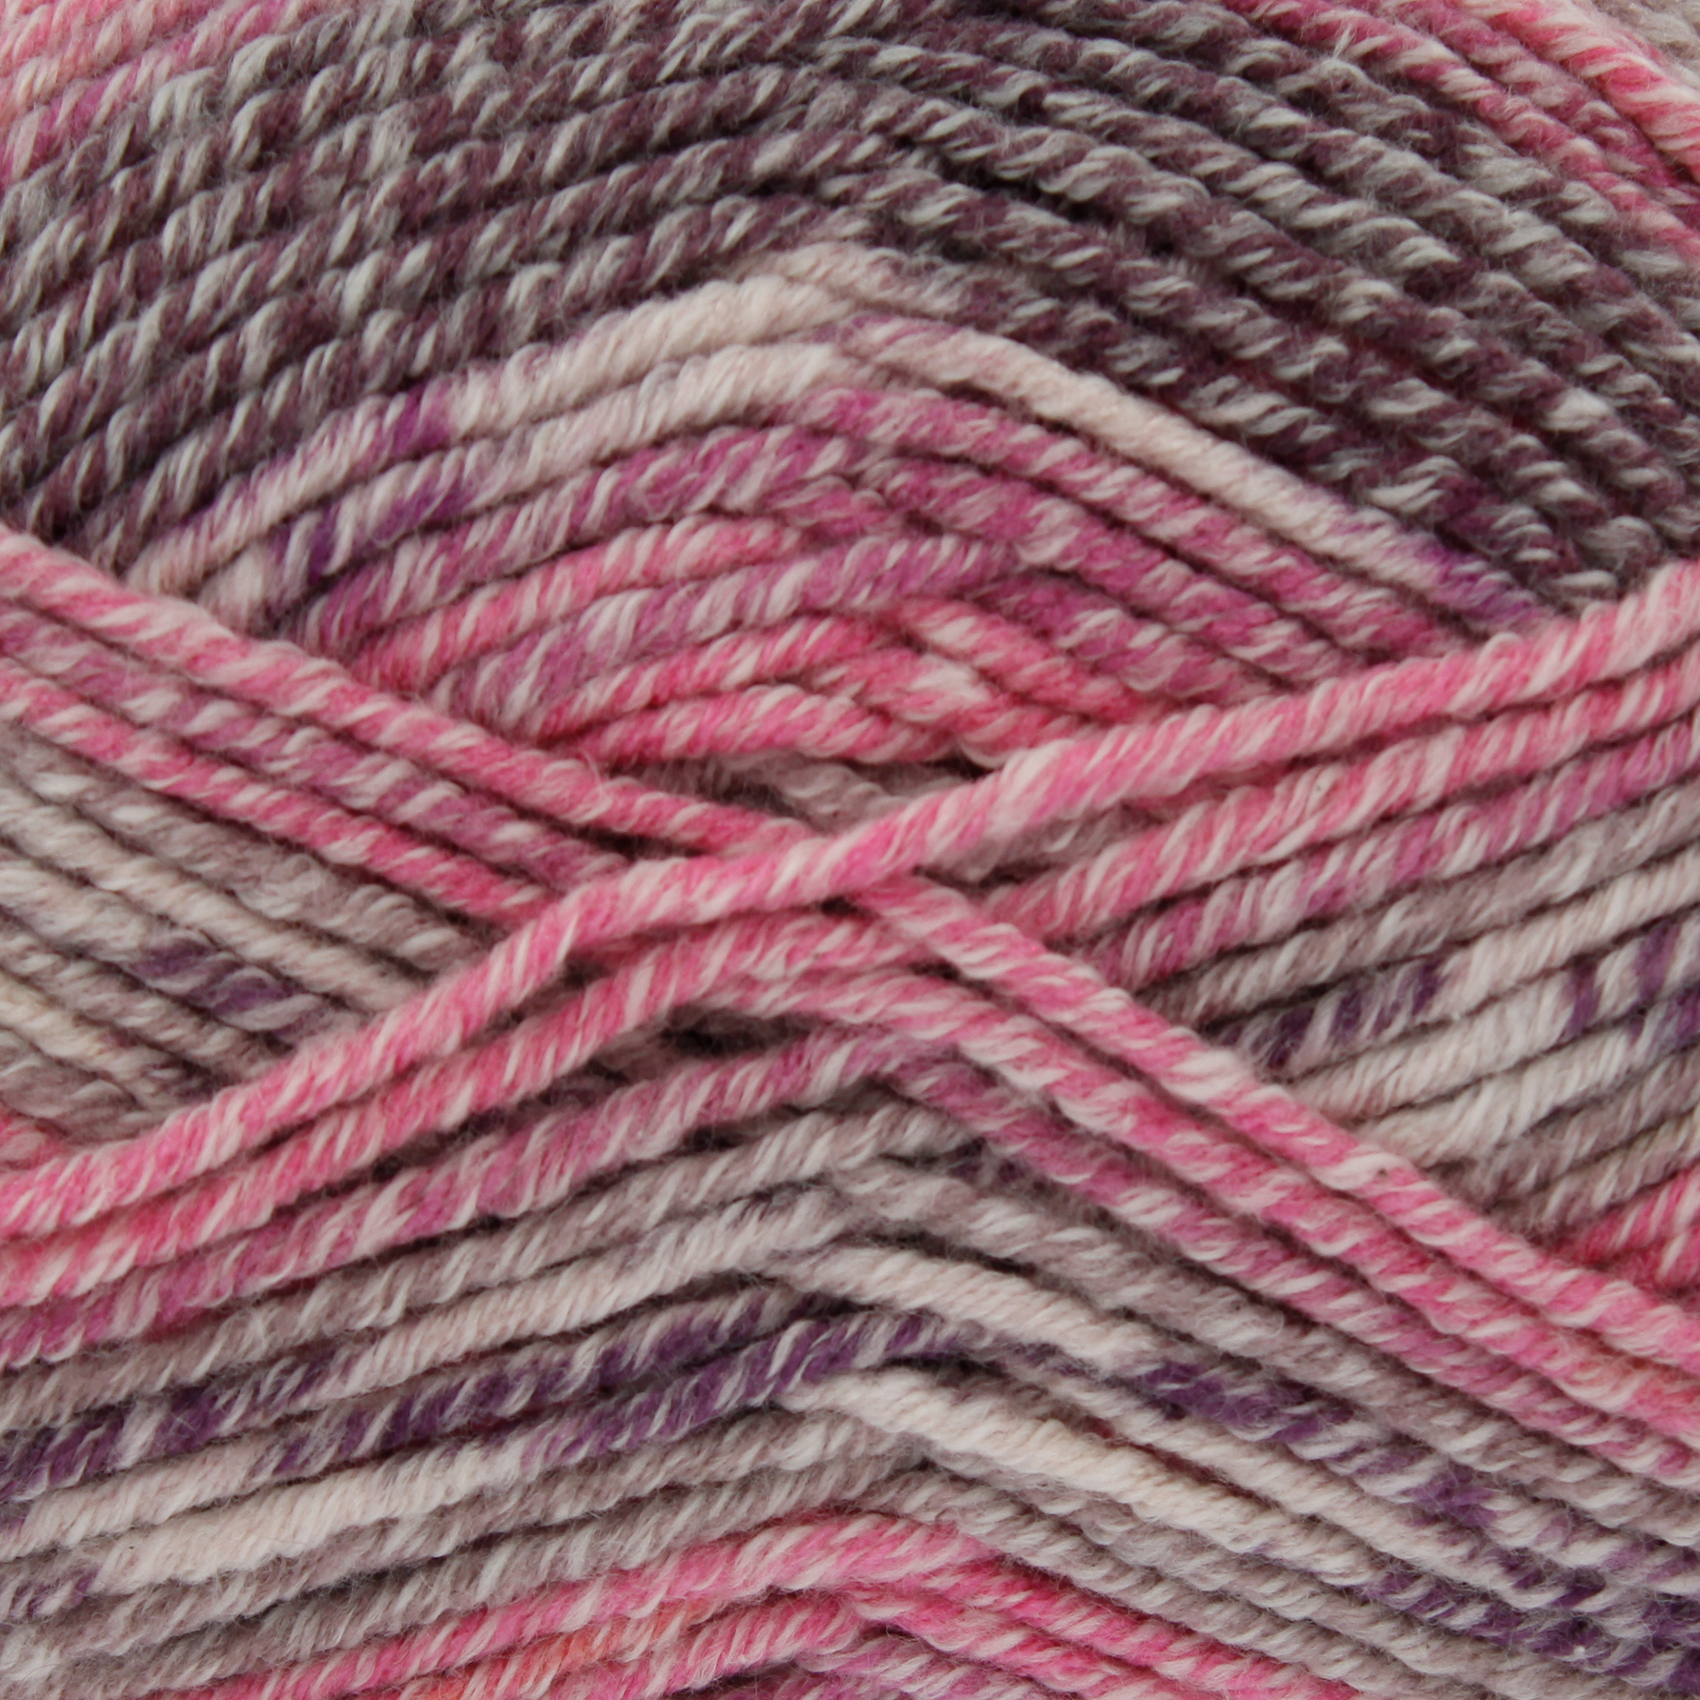 Knitting History Facts : Drifter chunky acrylic cotton knitting yarn super soft